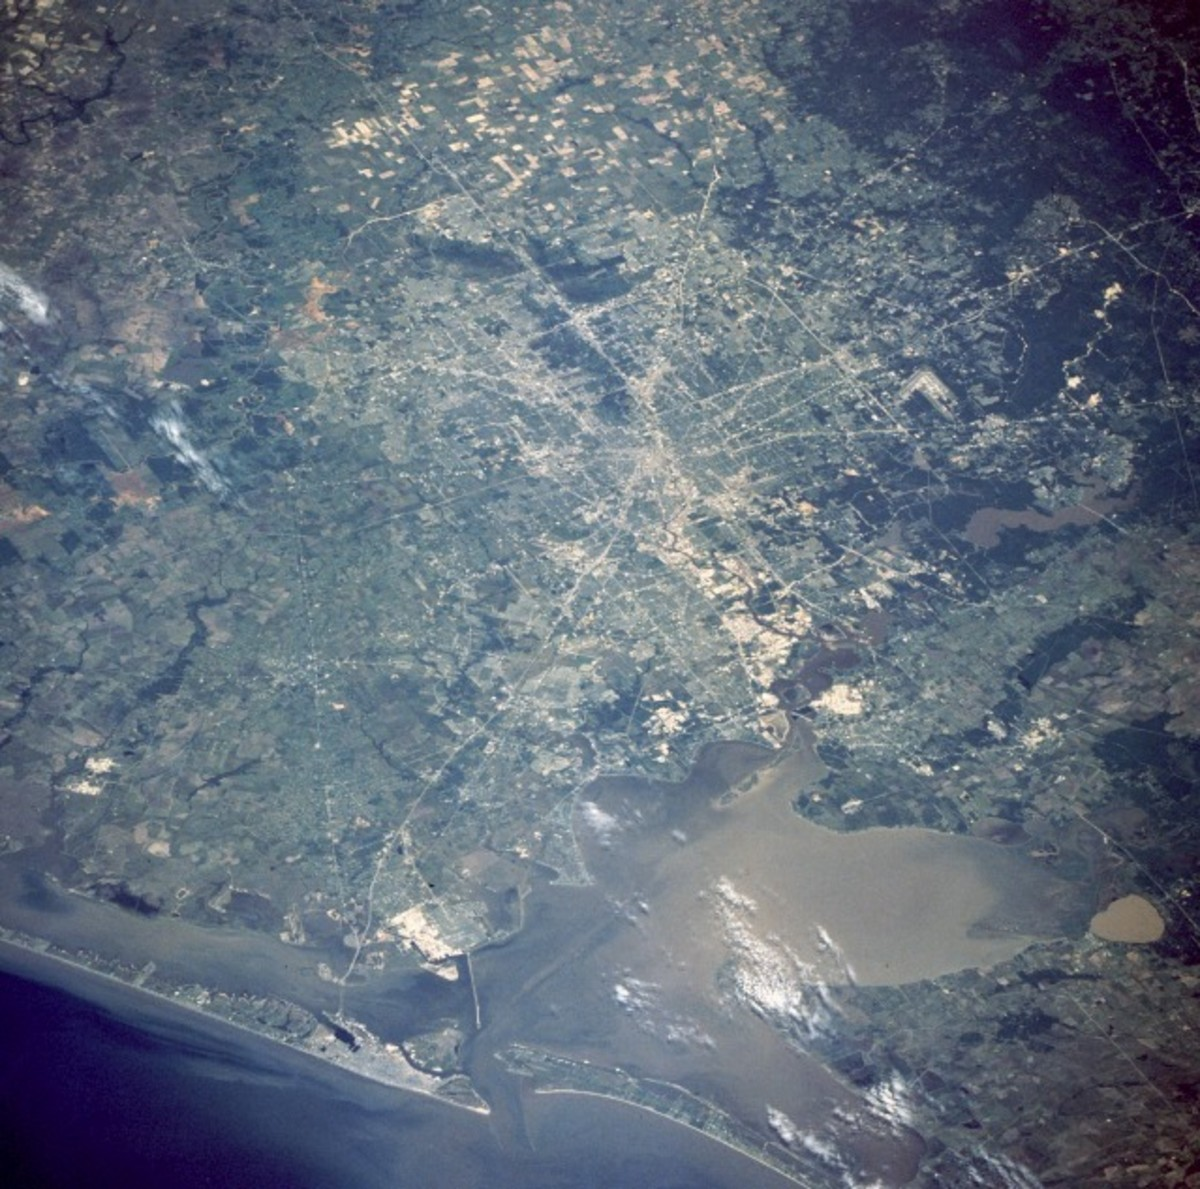 Houston as viewed from outer space